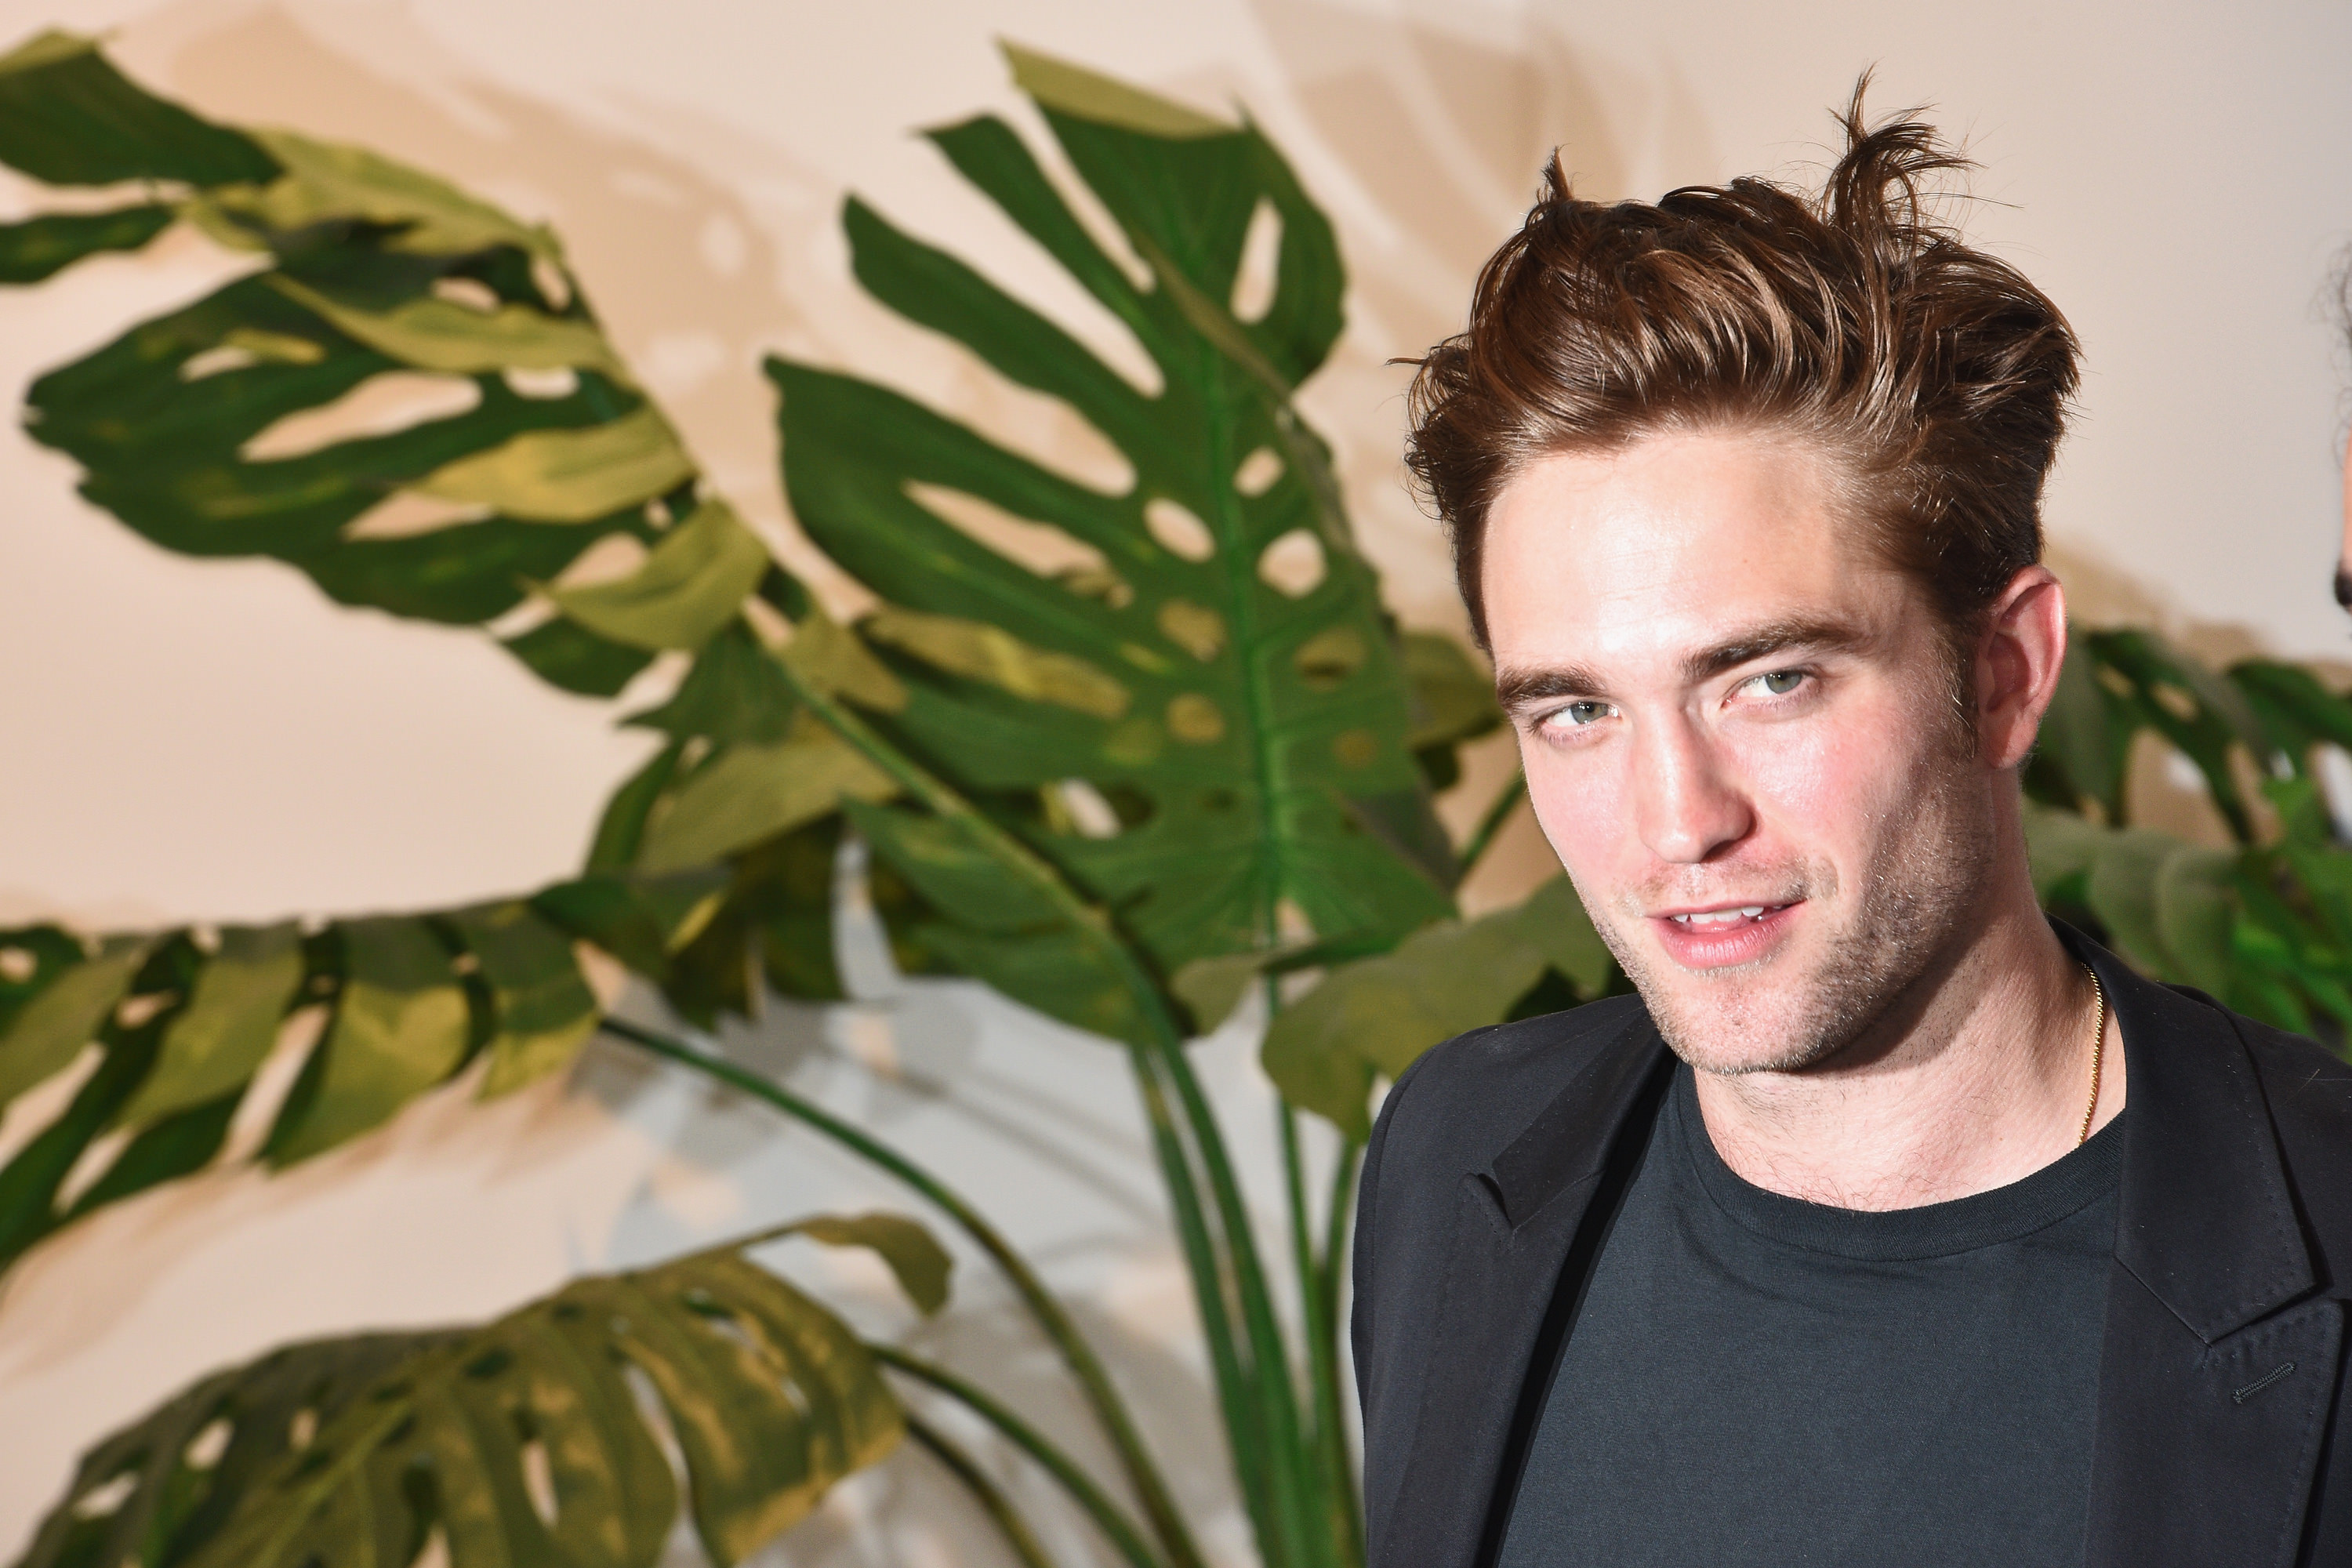 Fotos de Robert na estréia de Heaven Knows What